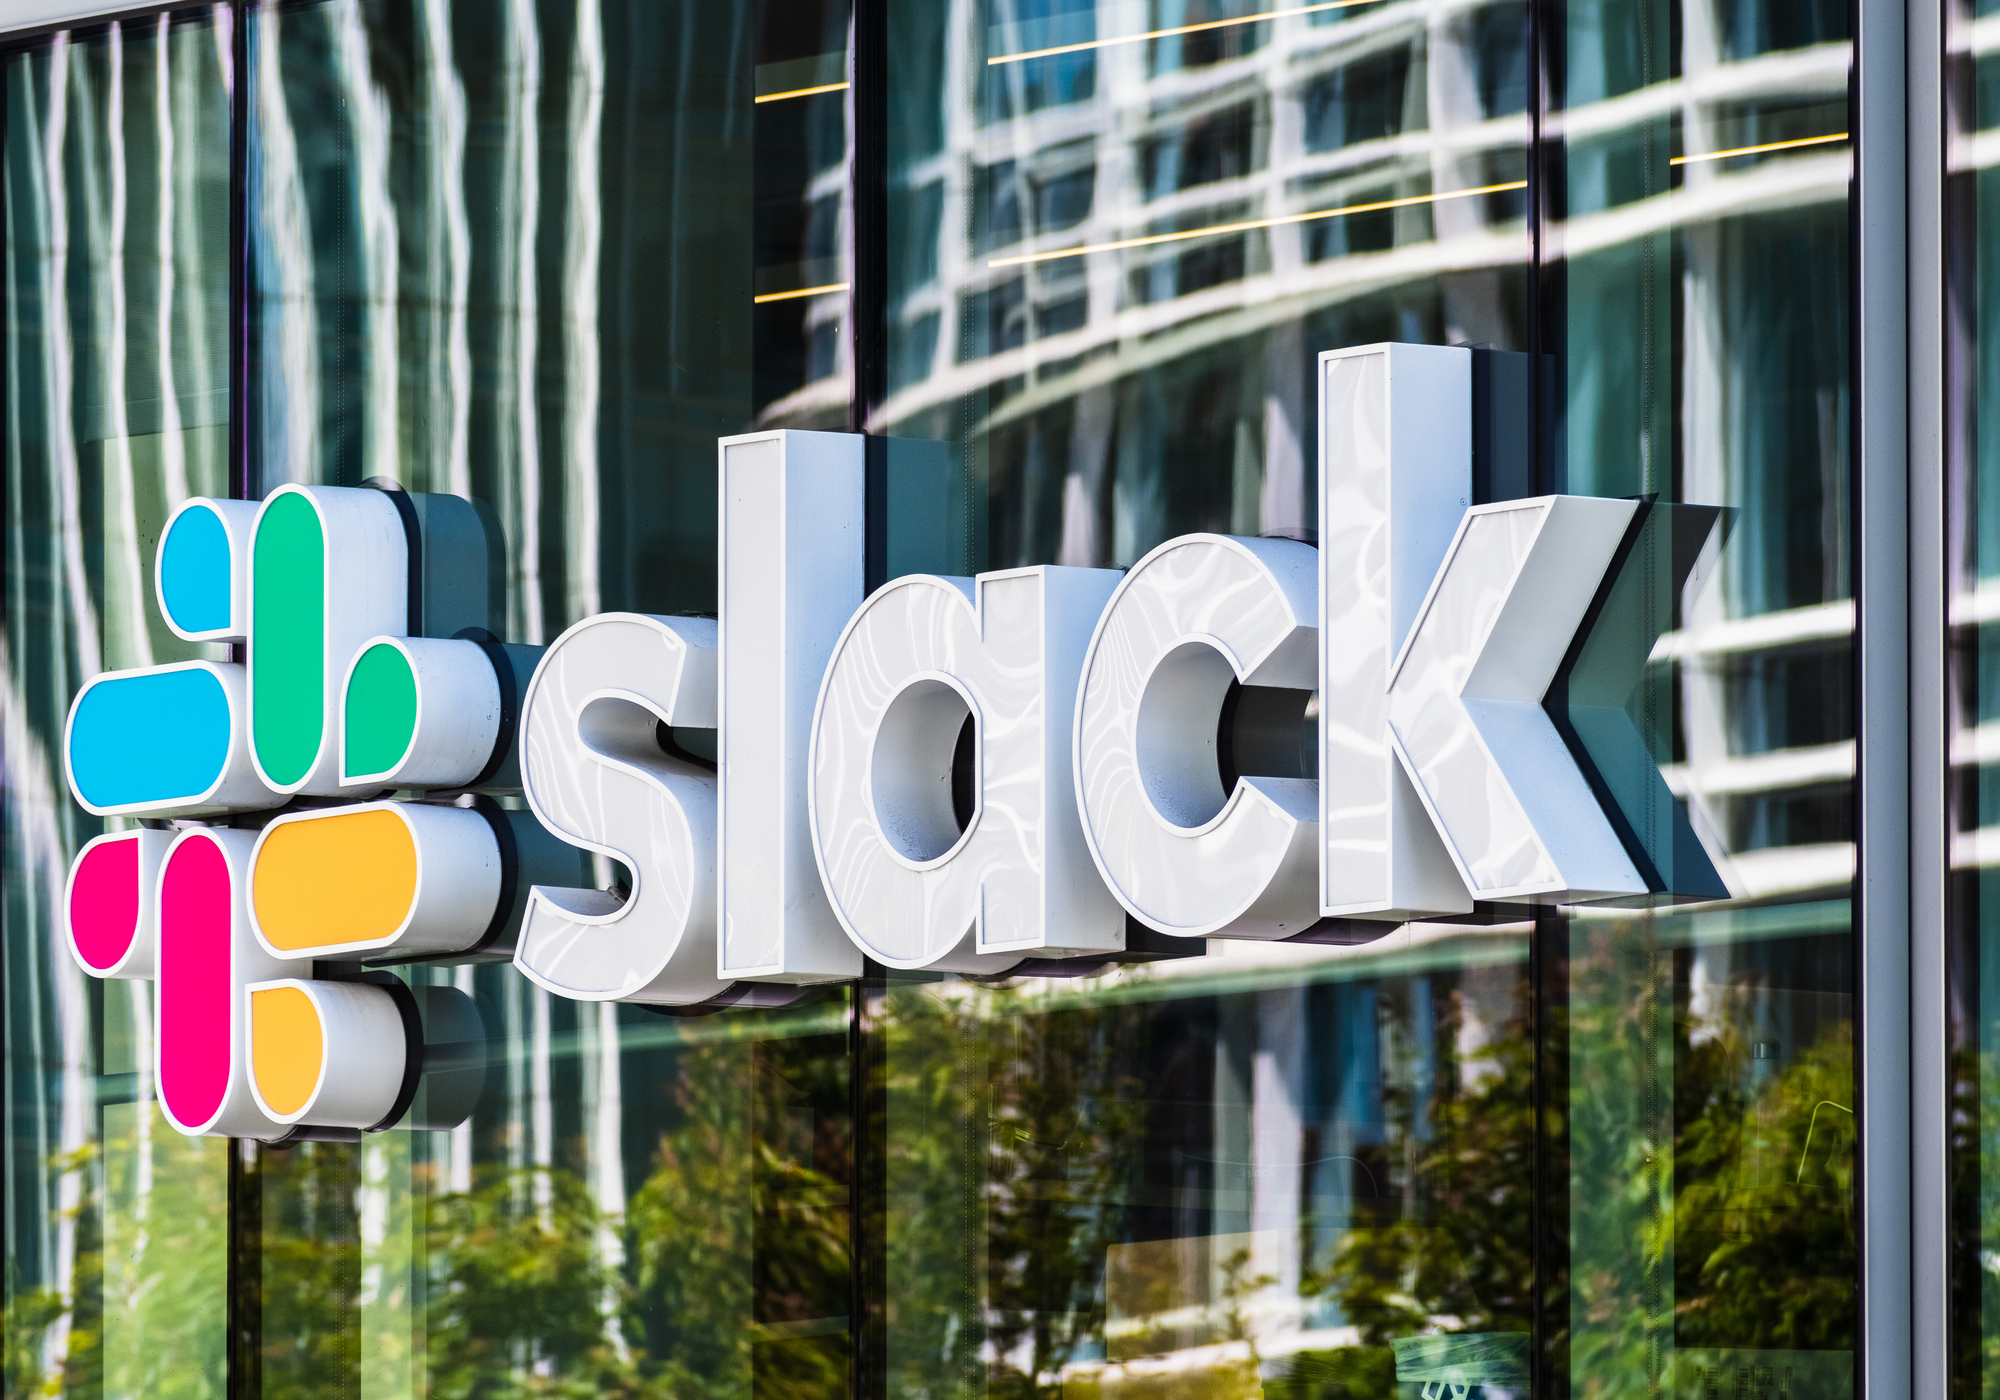 Slack narrows losses with steady Q2 growth